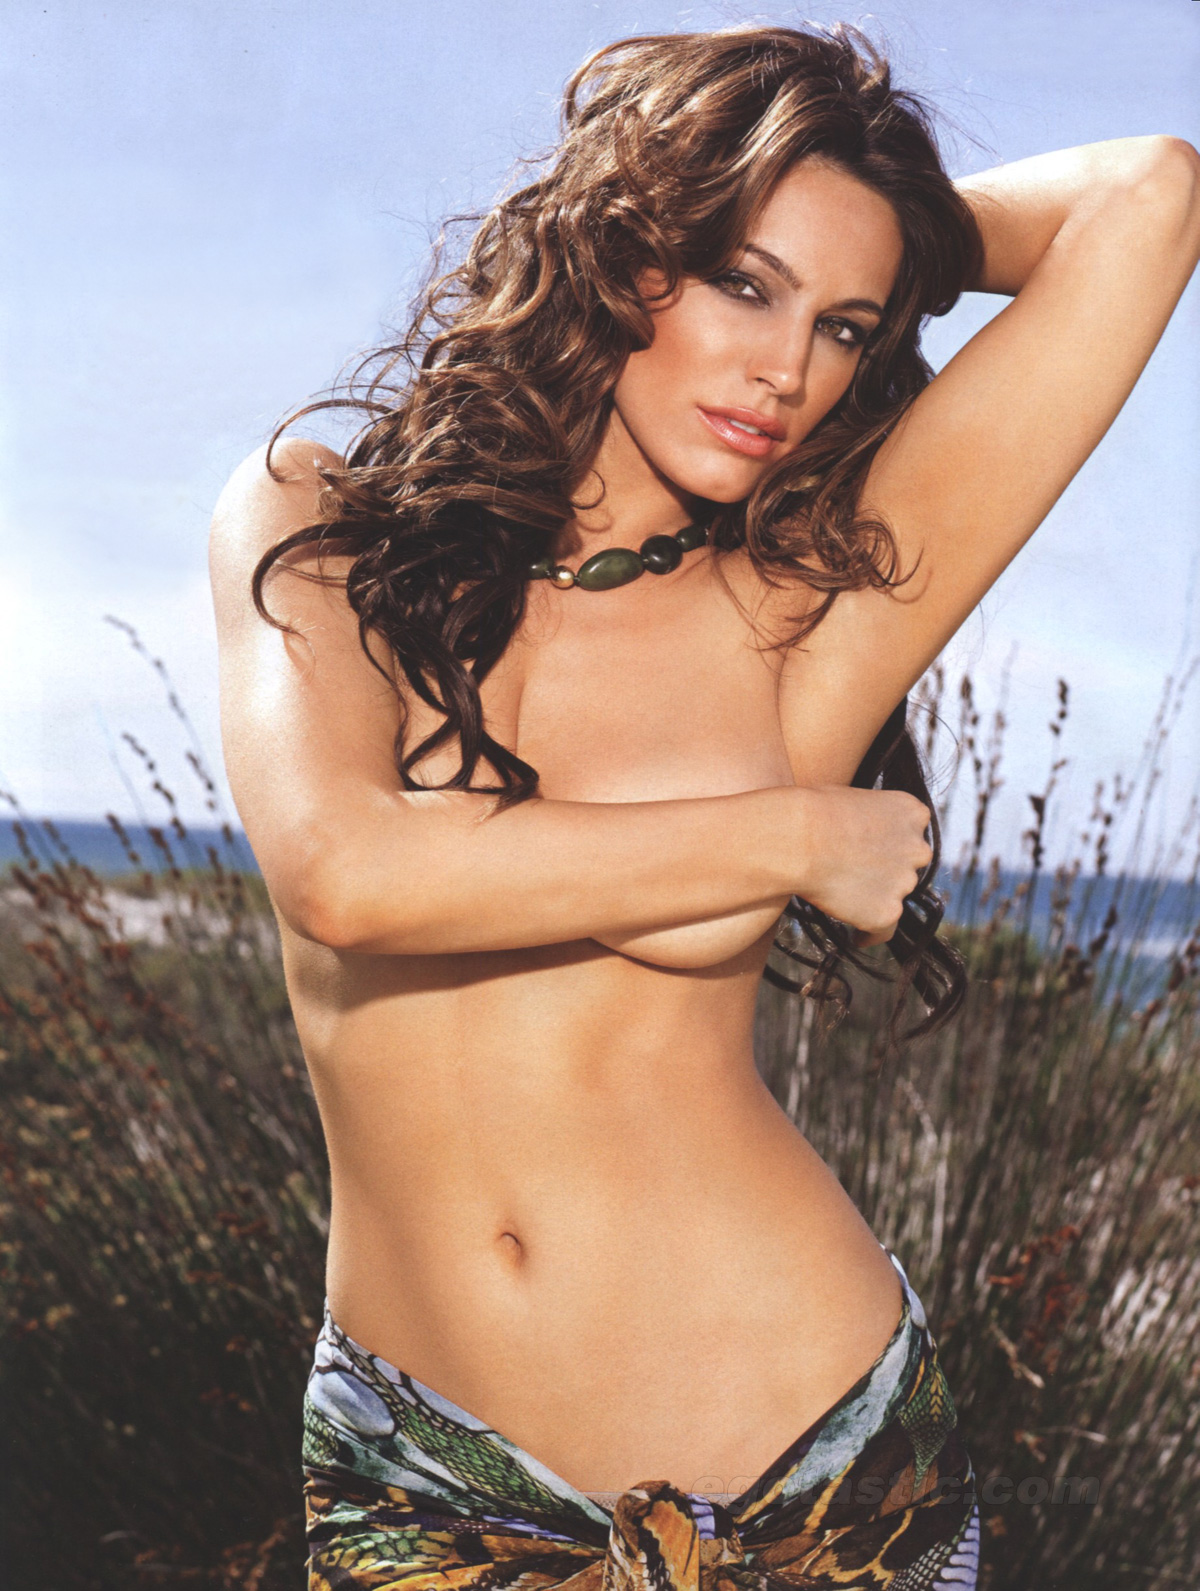 big 08October2010 kelly brook FHM australia 03 About almost nude celebrities   photos